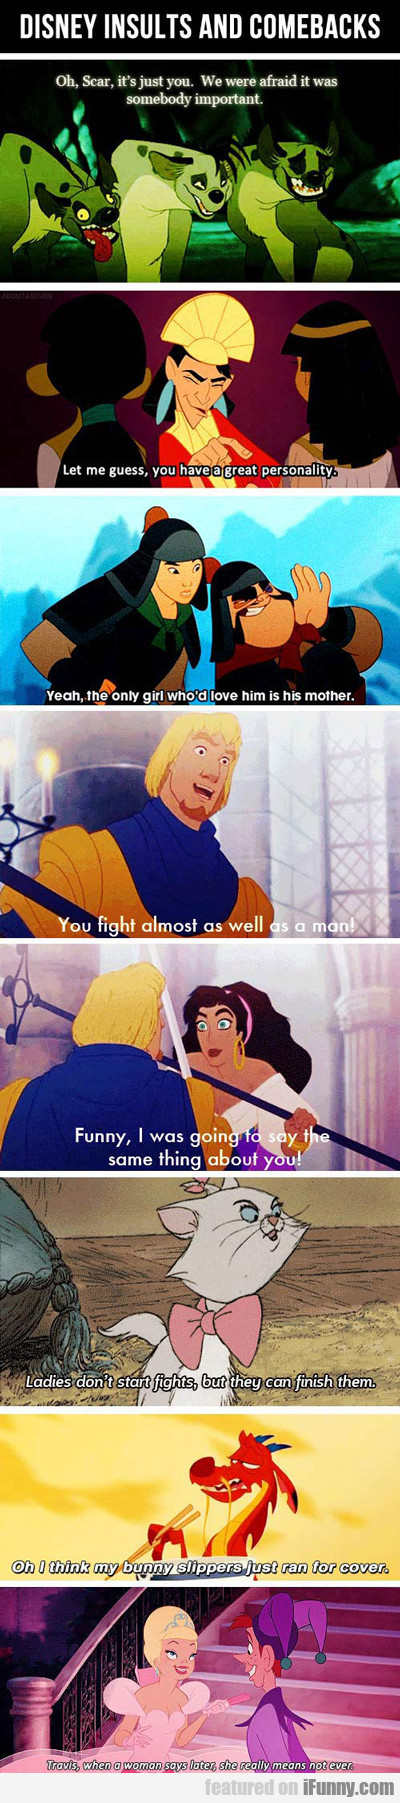 Disney Insults And Comebacks...